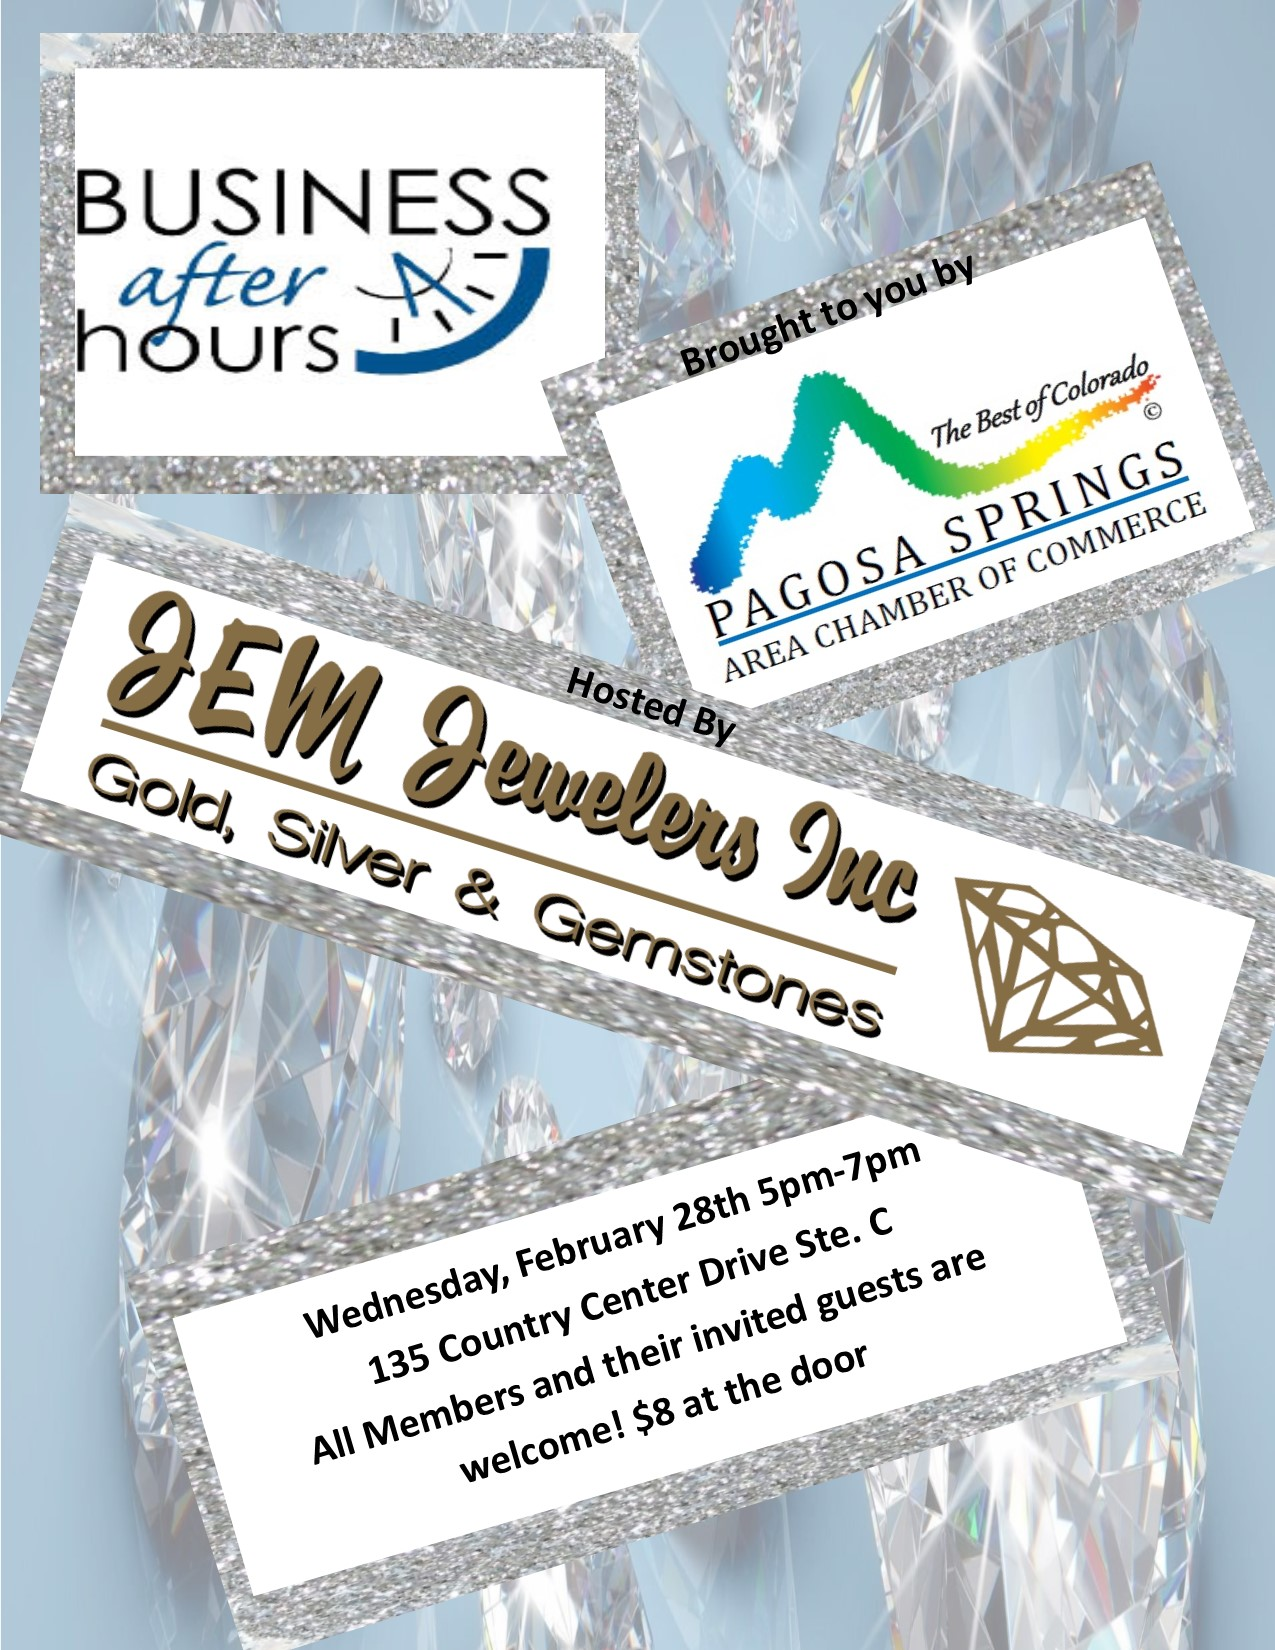 Business After Hours January 28th at JEM Jewelers